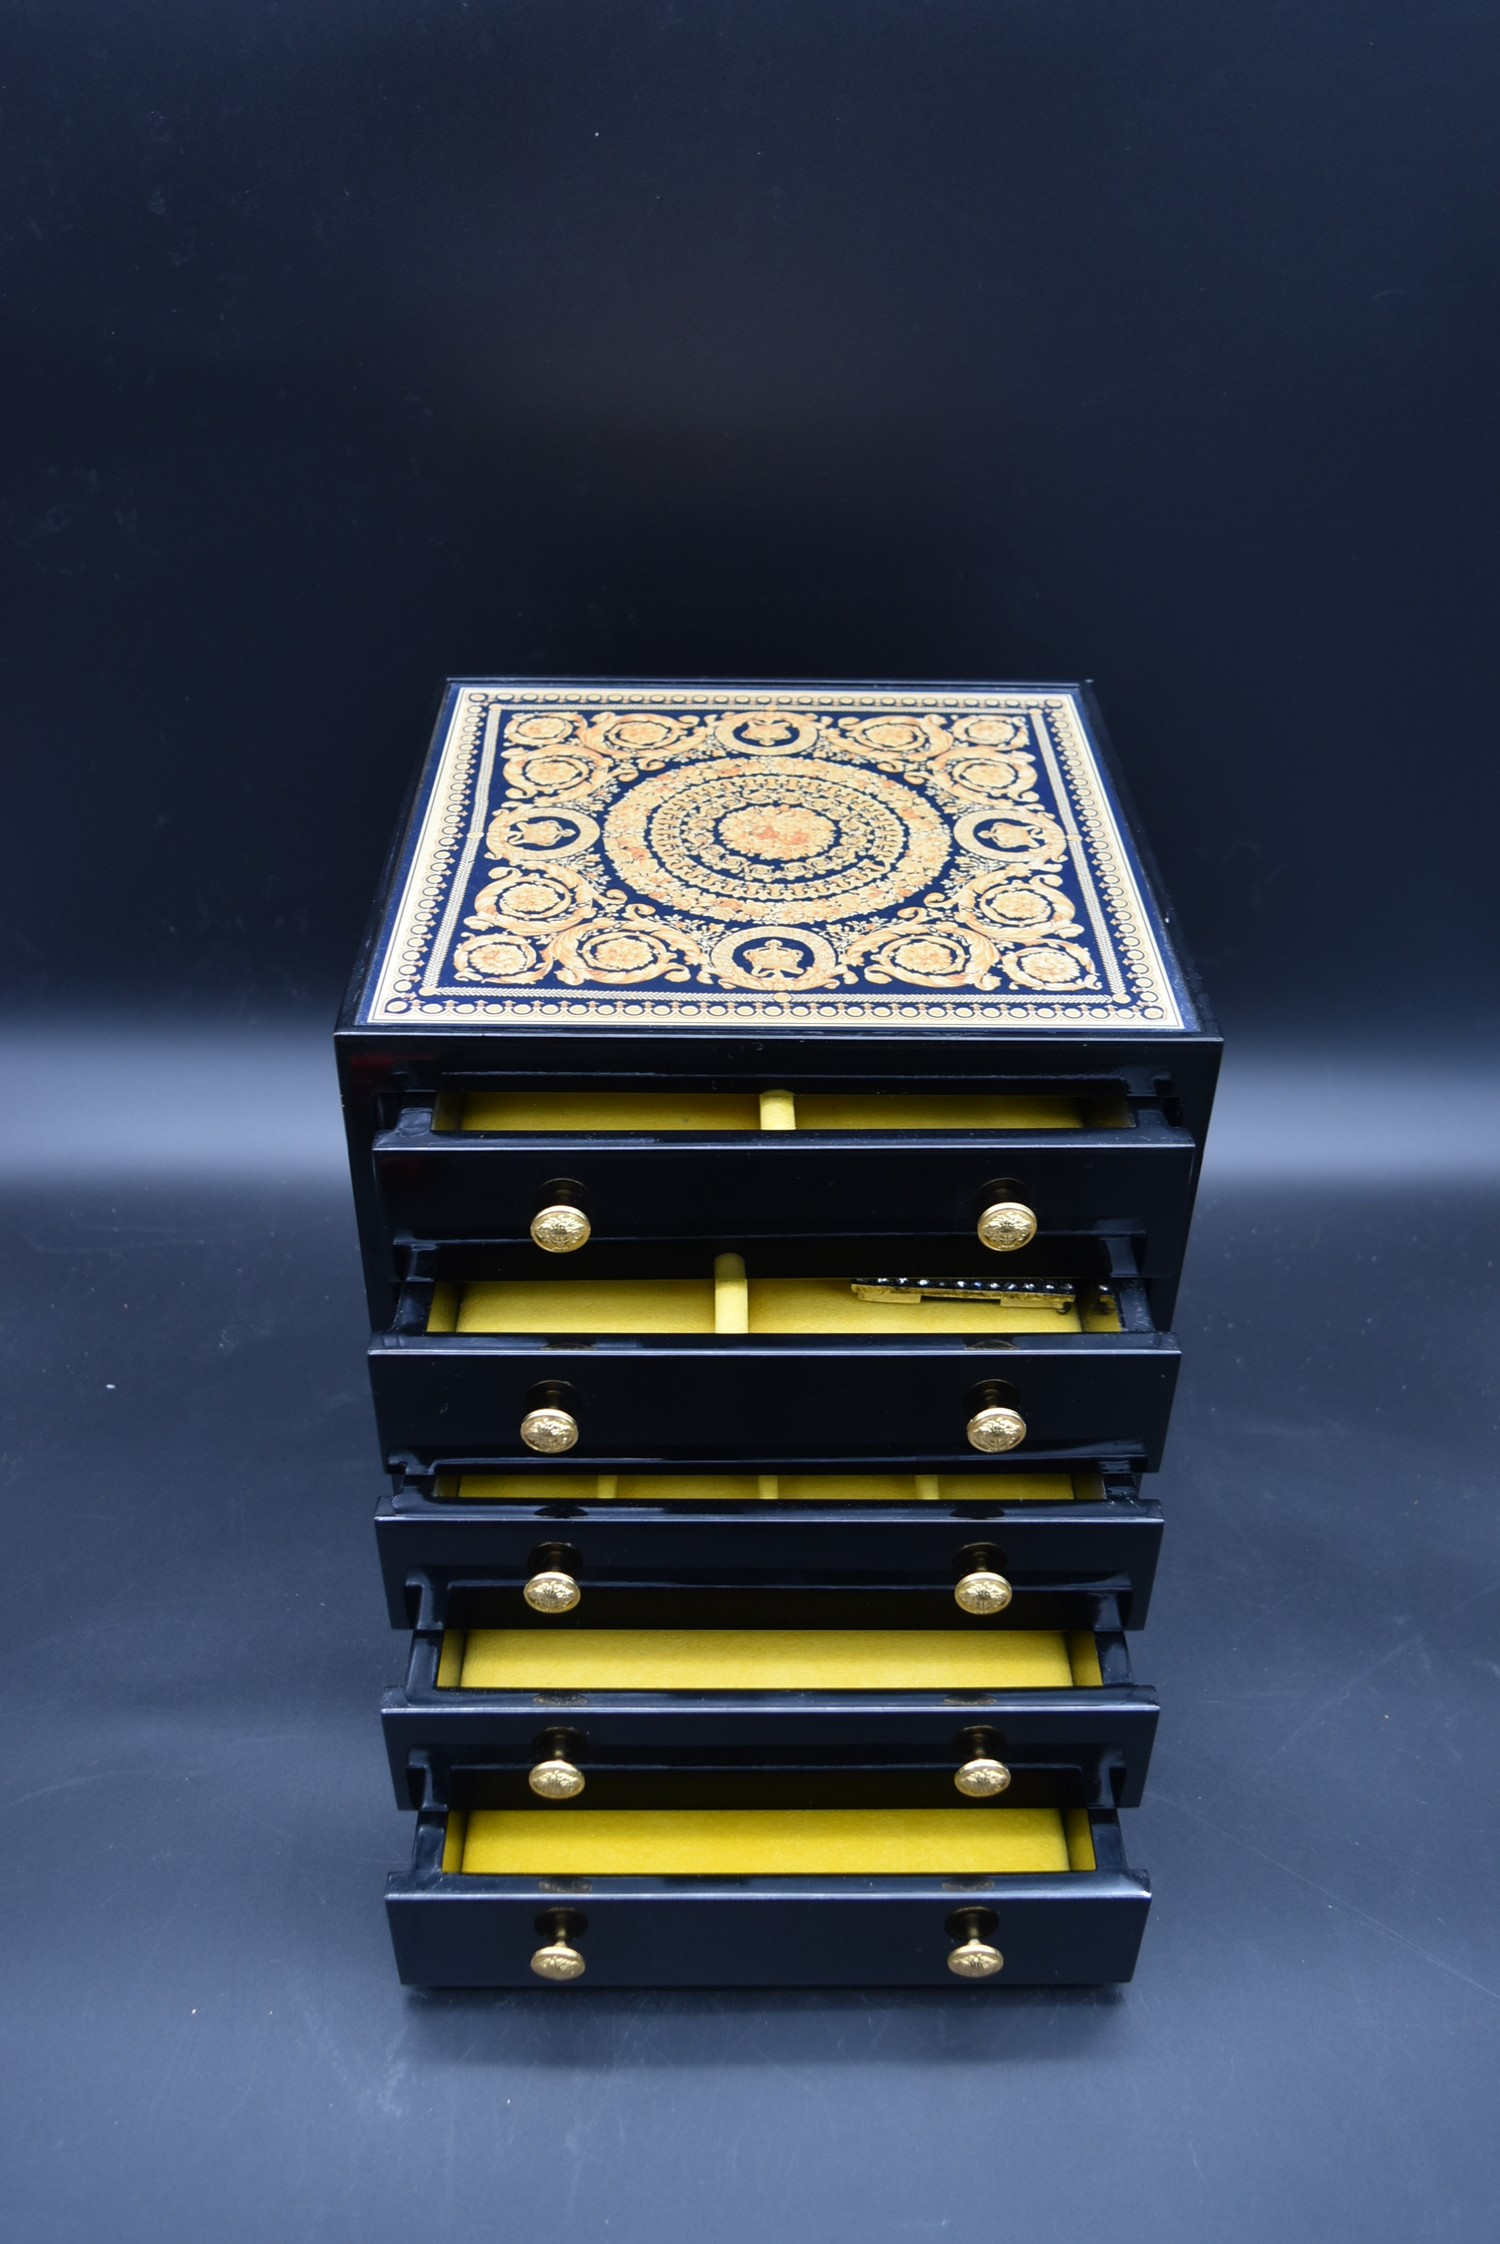 A lacquered Gianni Versace tray along with a similar jewellery chest and a lidded trinket box. H. - Image 10 of 18